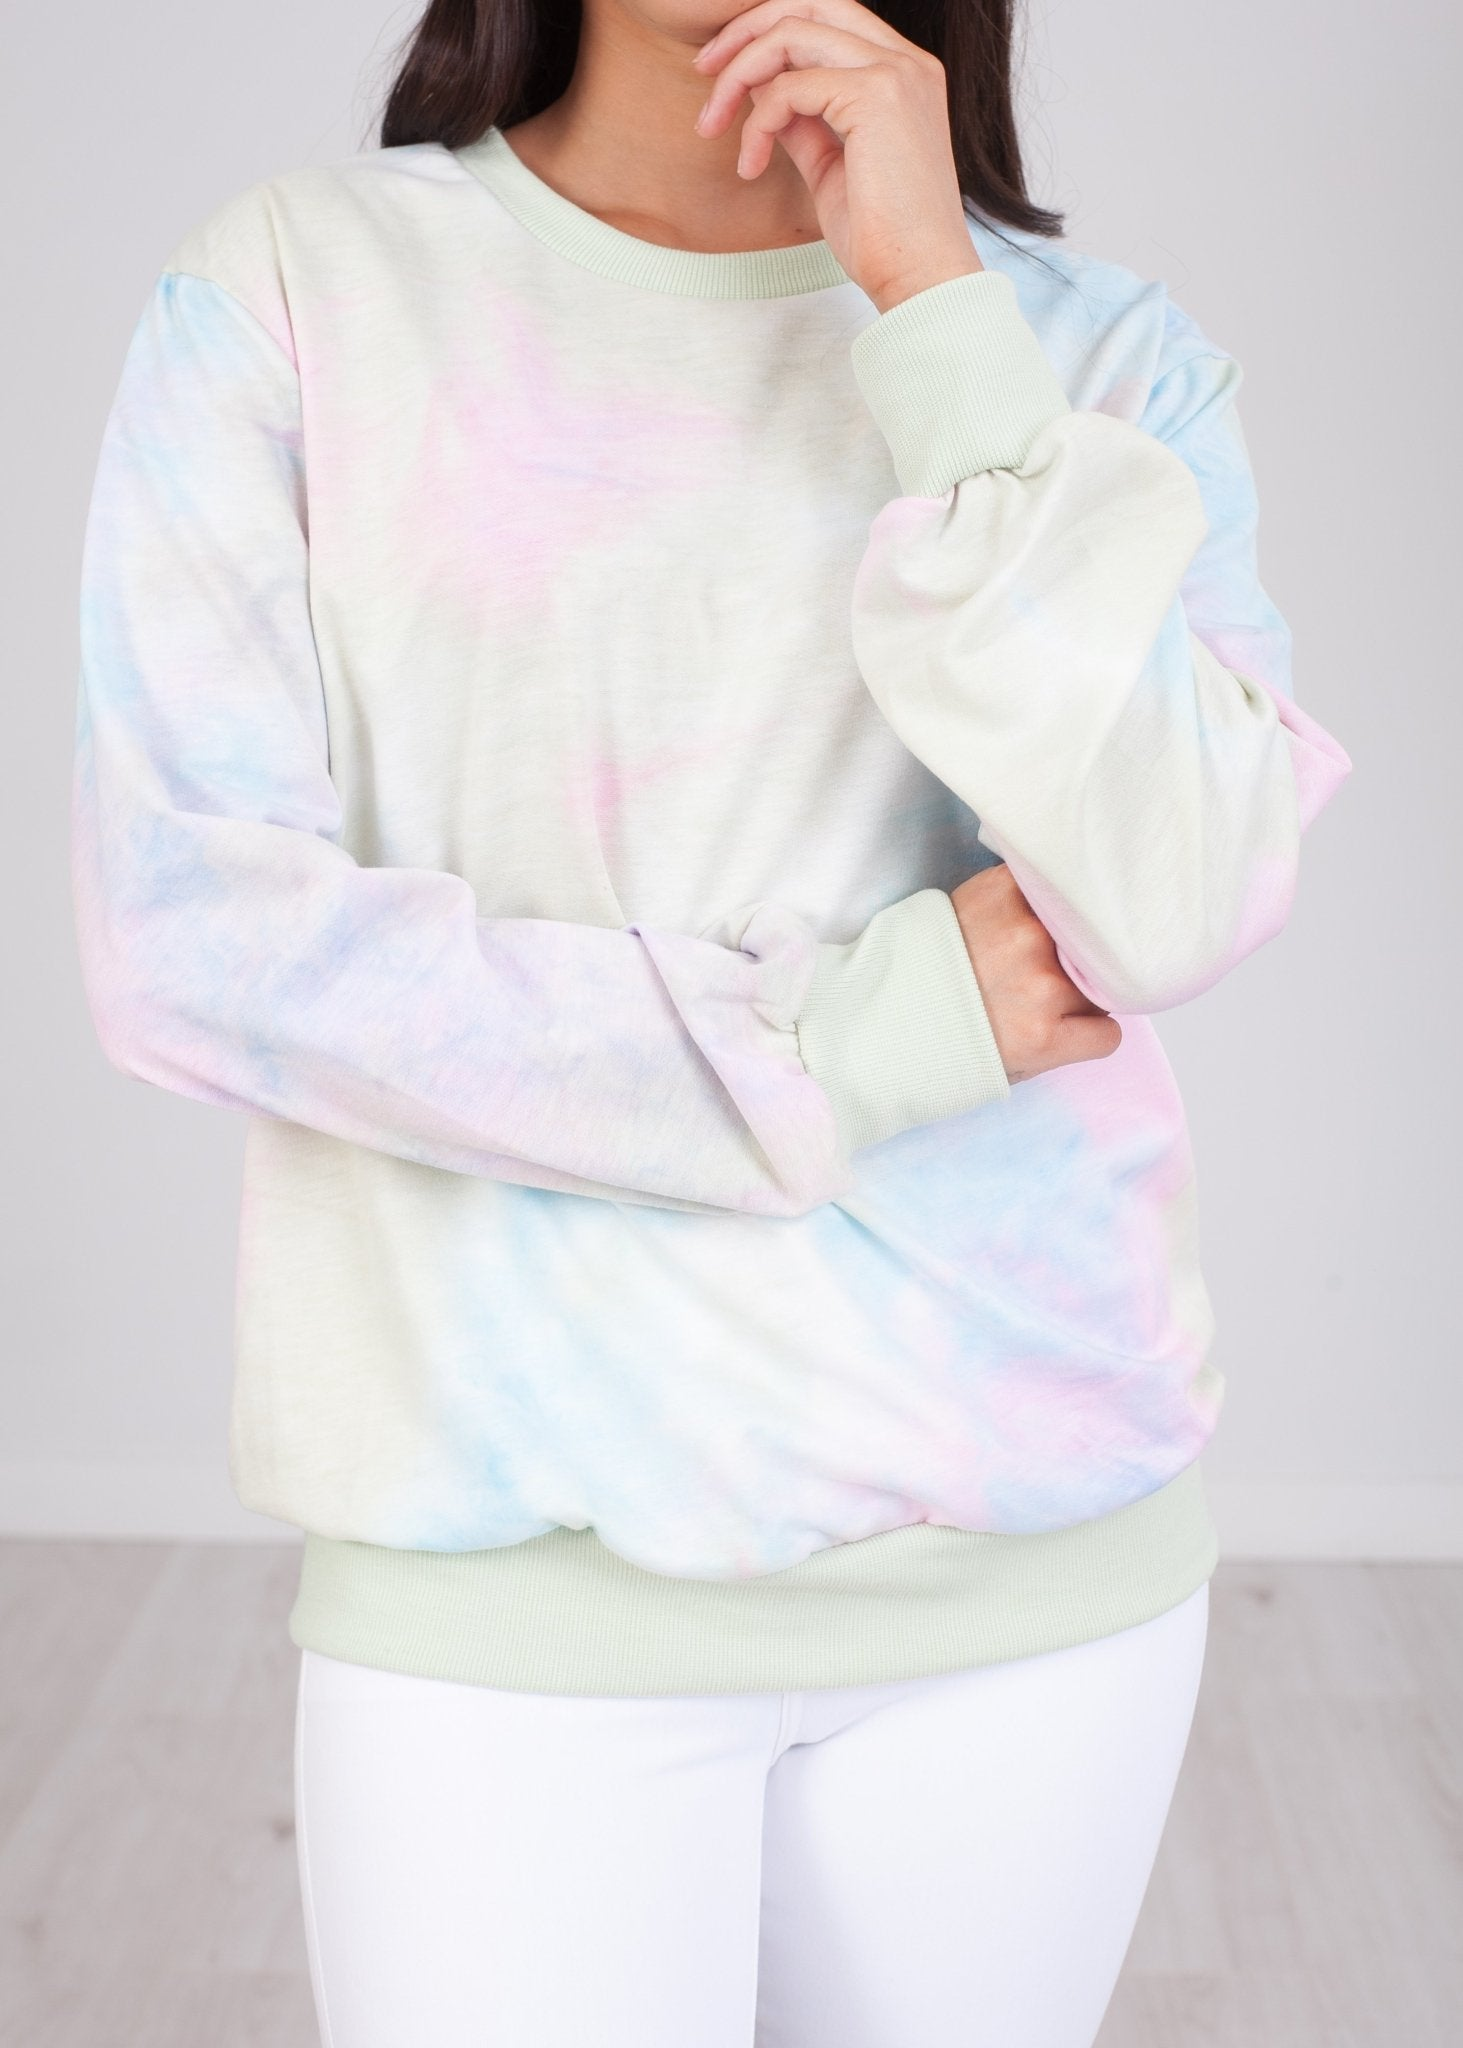 Alice Tie Dye Sweater - The Walk in Wardrobe